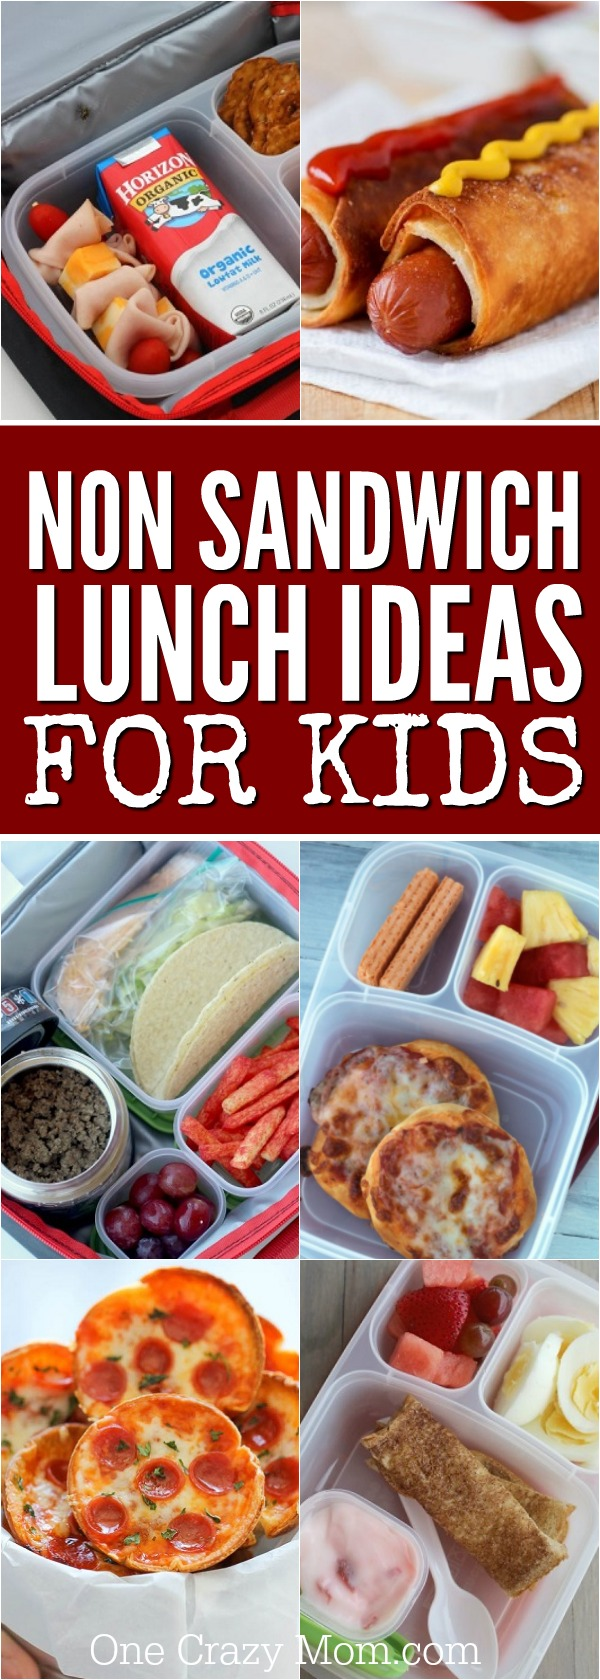 If your kids are tired of sandwiches, check out these ideas! 20 non sandwich lunch ideas for kids that are yummy and kid approved!